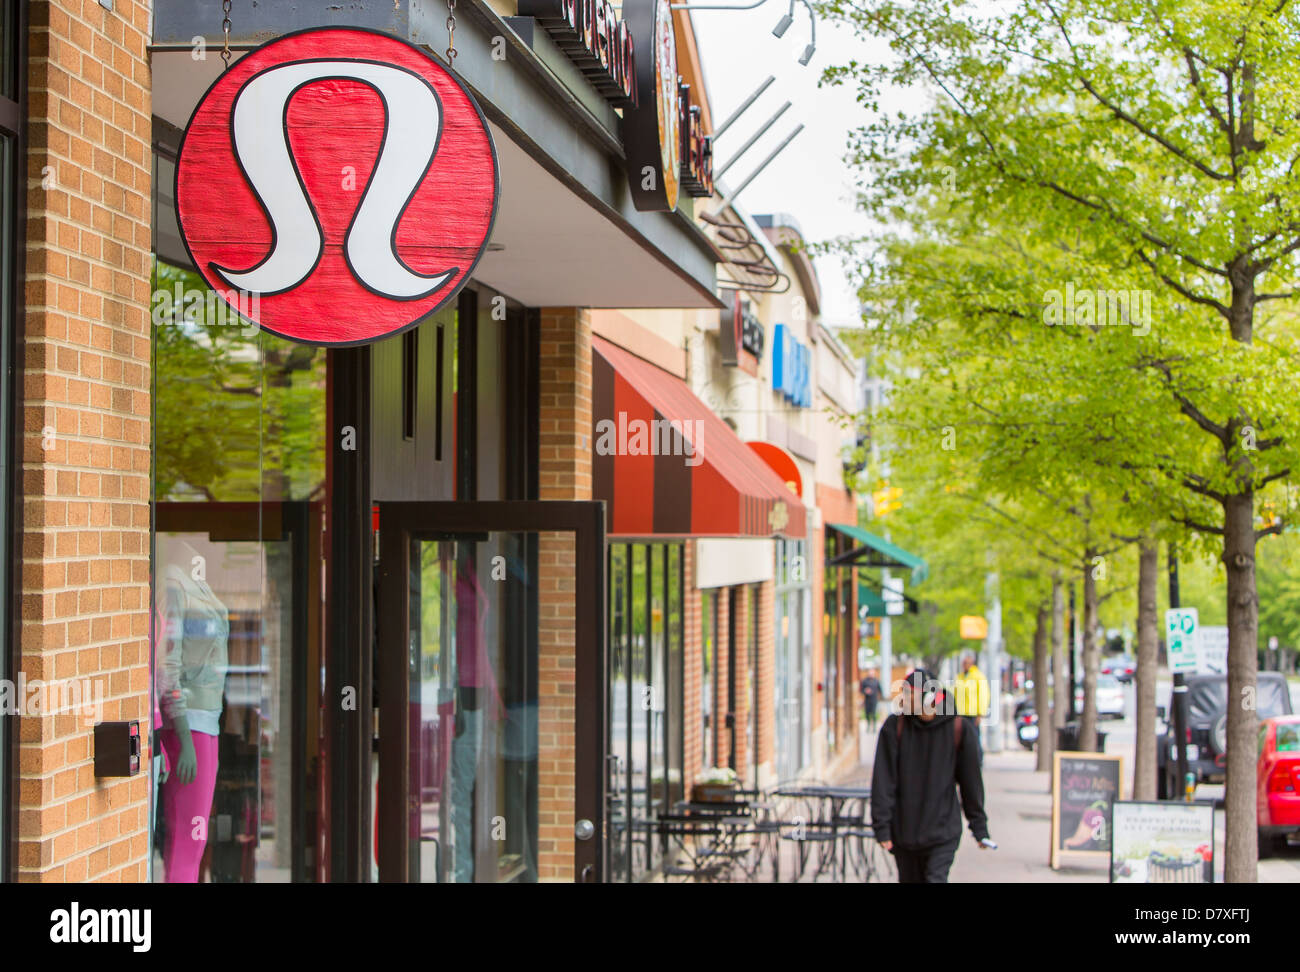 LuluLemon USA has a network of shops, which you can find in majority of American towns, maybe even in your own. You can find a complete list of shops, opening hours and maps below on this page. You can find a complete list of shops, opening hours and maps below on this page.